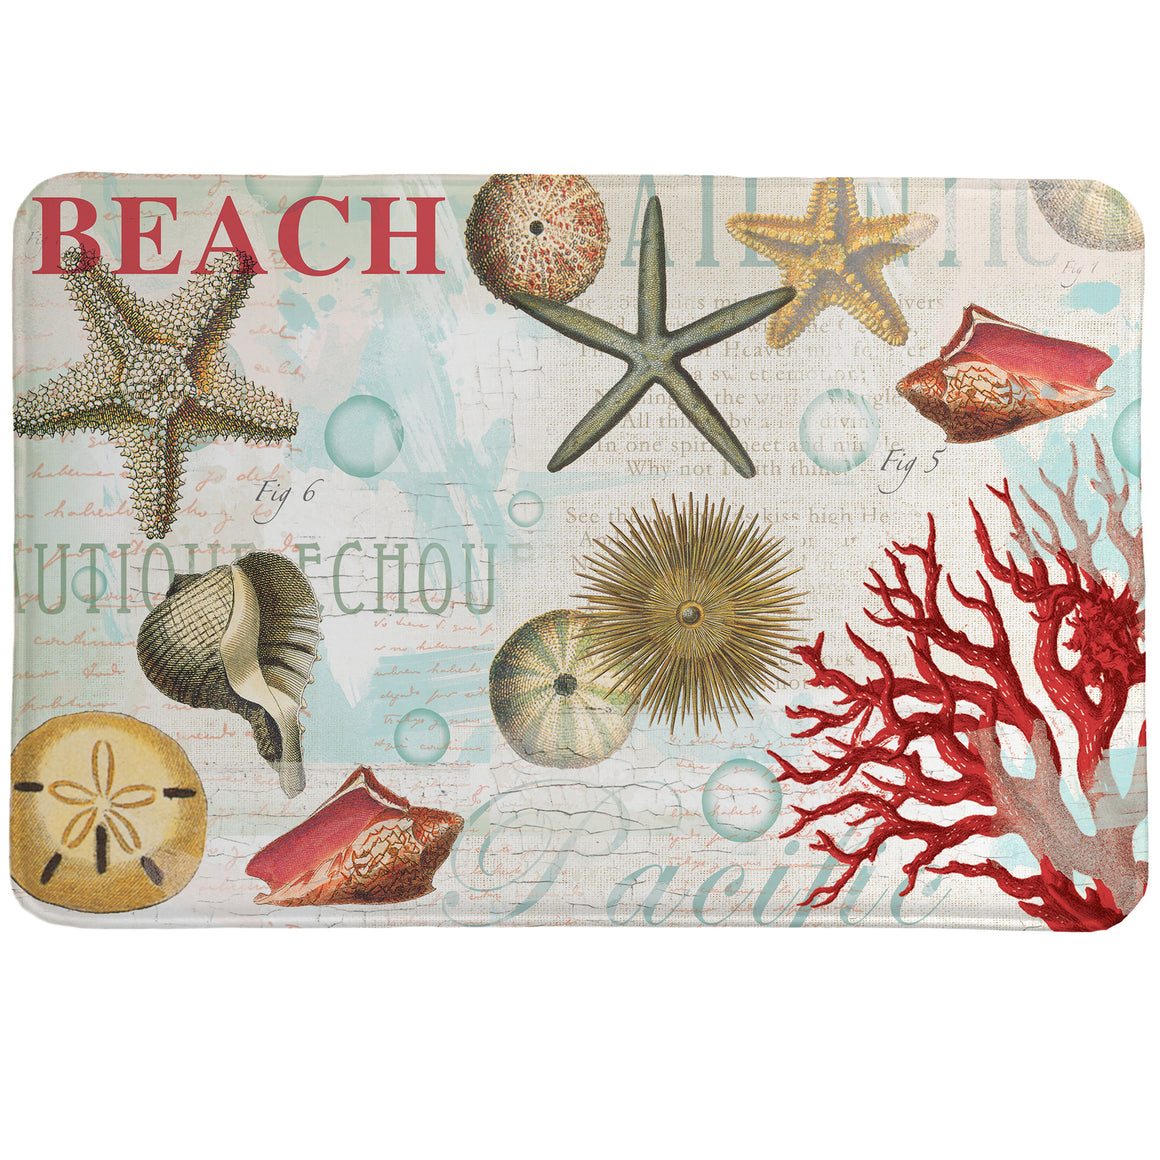 Dream Beach Shells Memory Foam Rug features finely drawn shells and coral are scattered among bubbles.